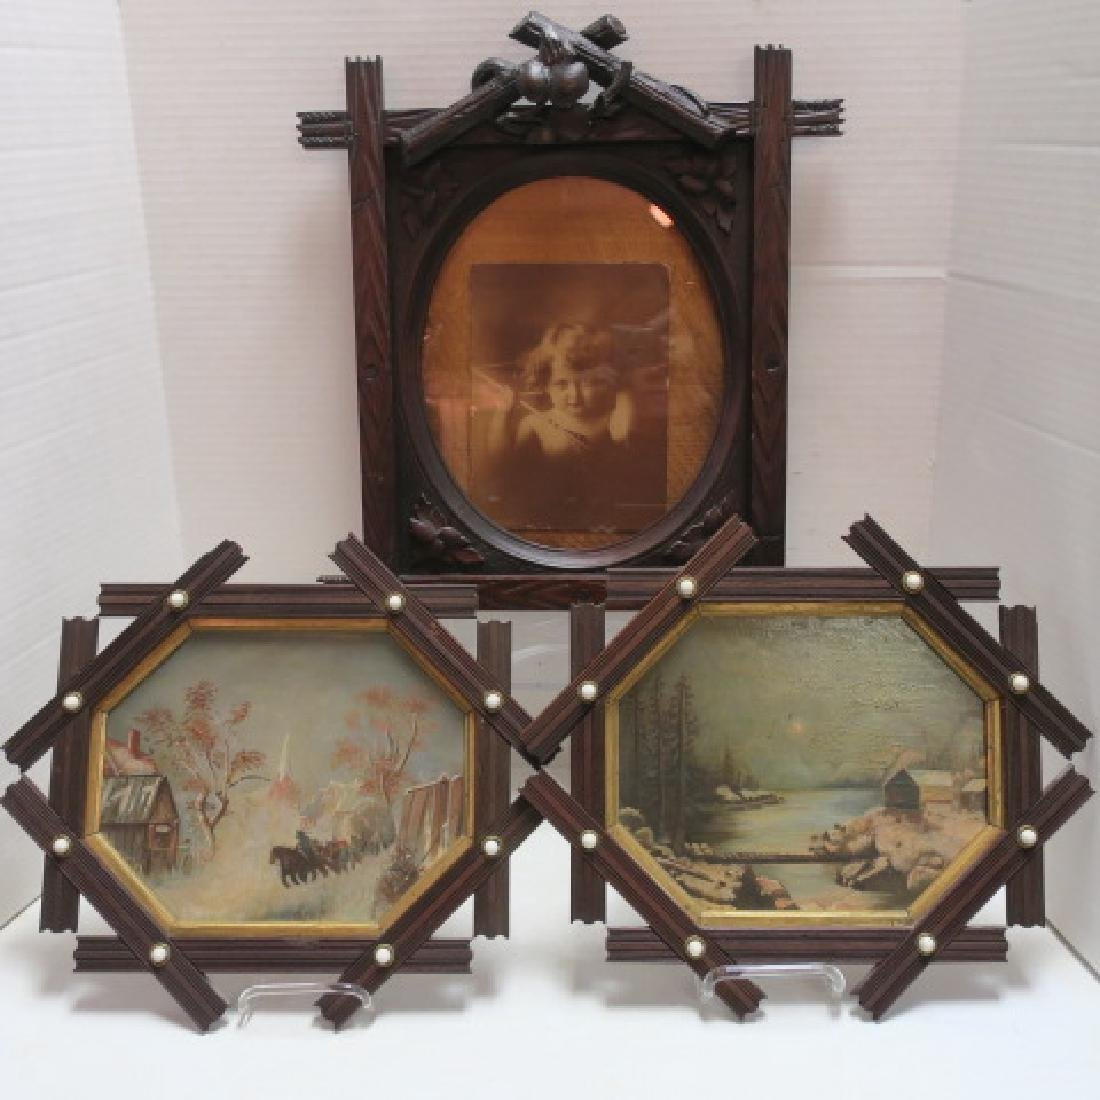 Three Tramp Art Frames with 2 Paintings on Glass: